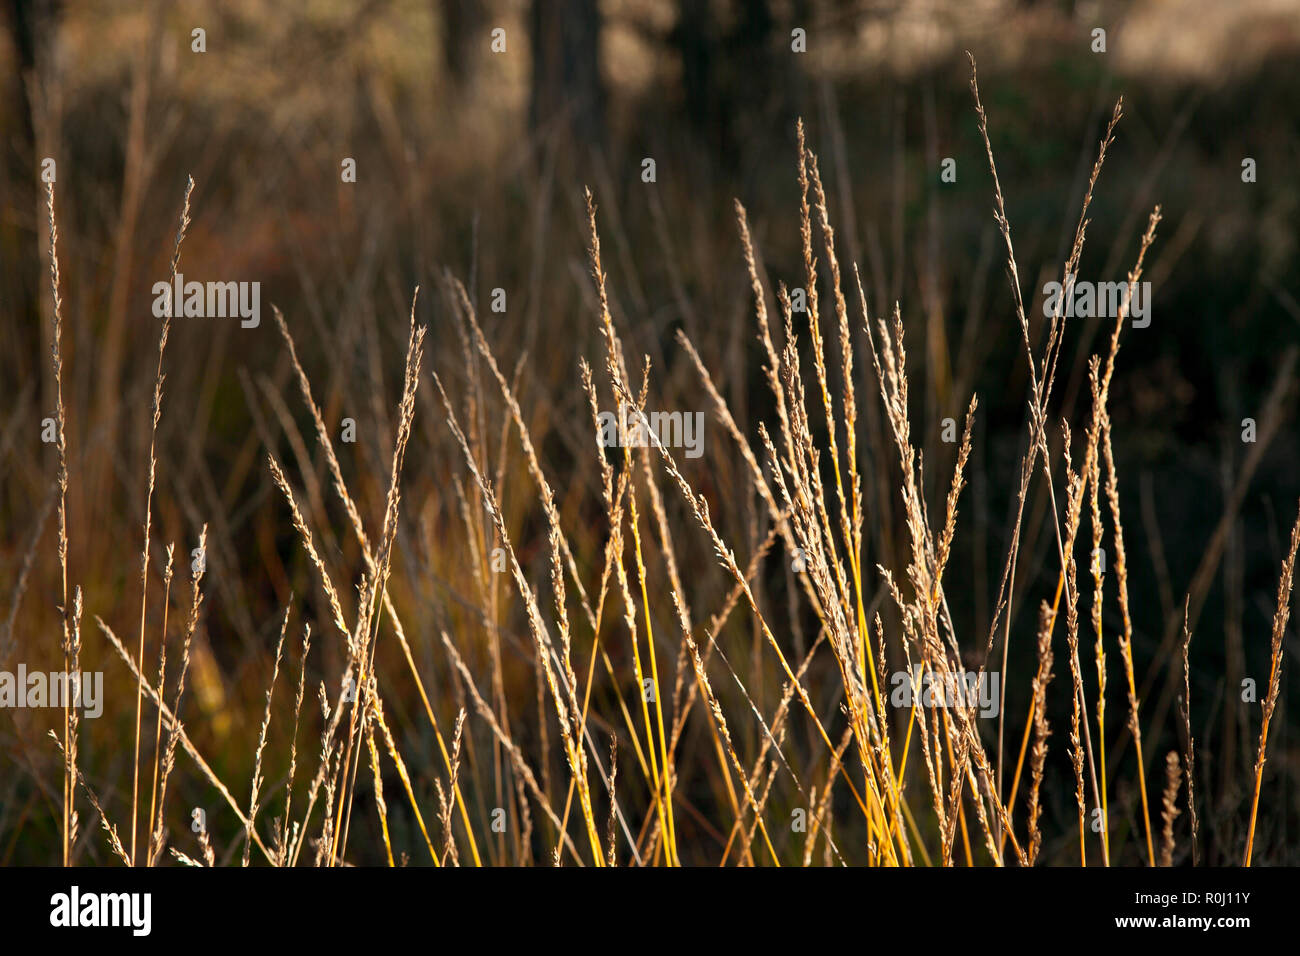 Long grass in late afternoon sun, golden natural colours with blurred background. - Stock Image